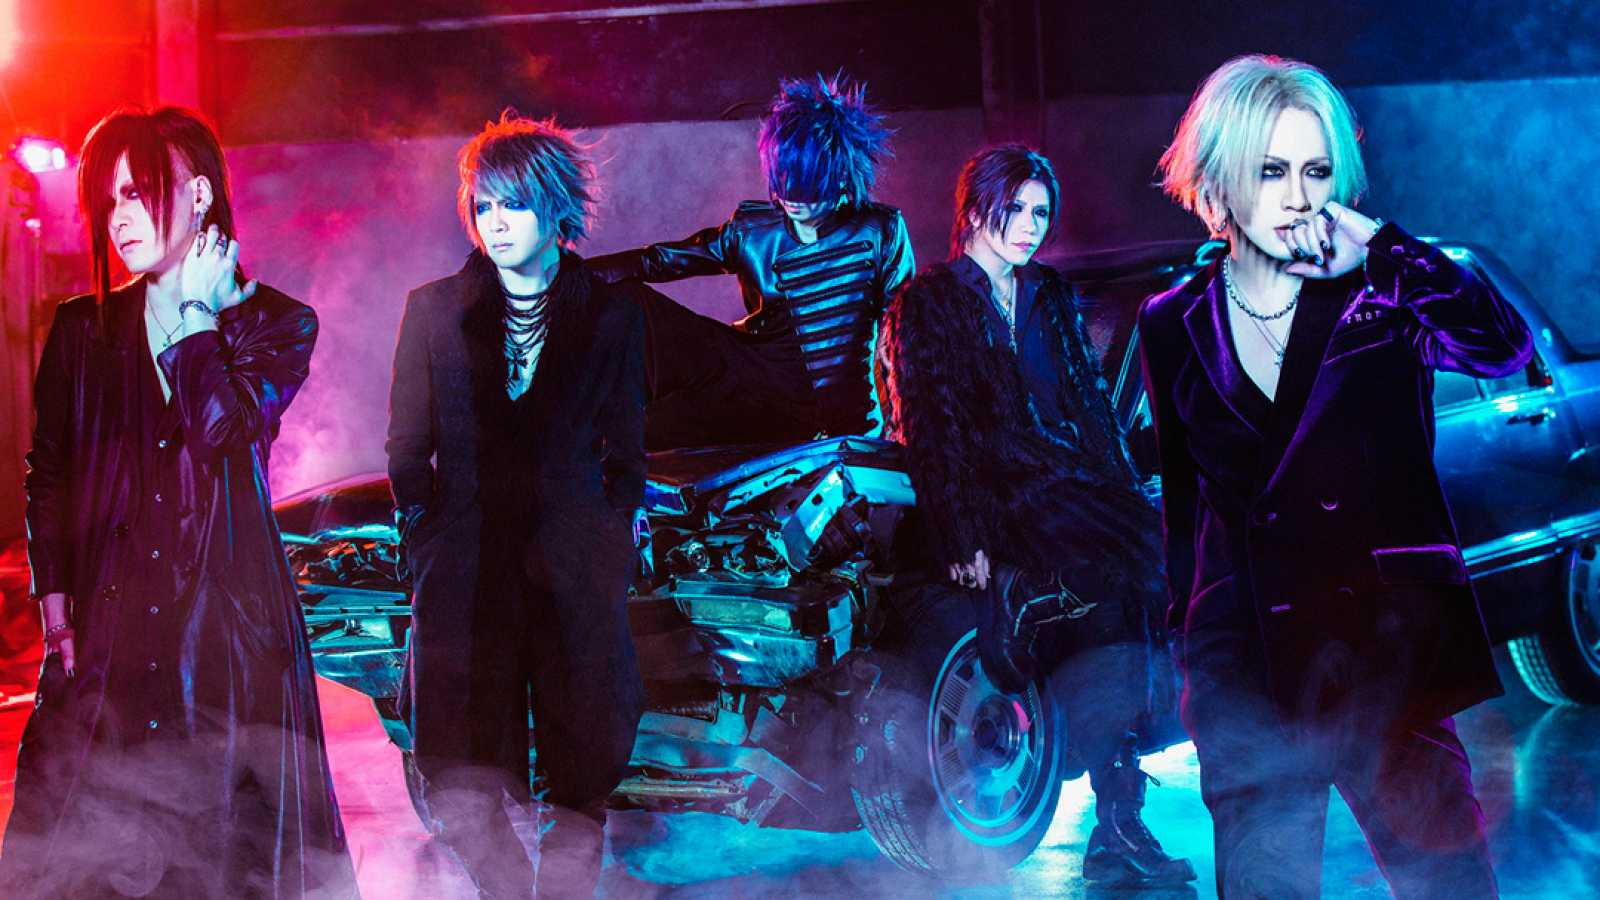 Entrevista com o the GazettE em Nova York